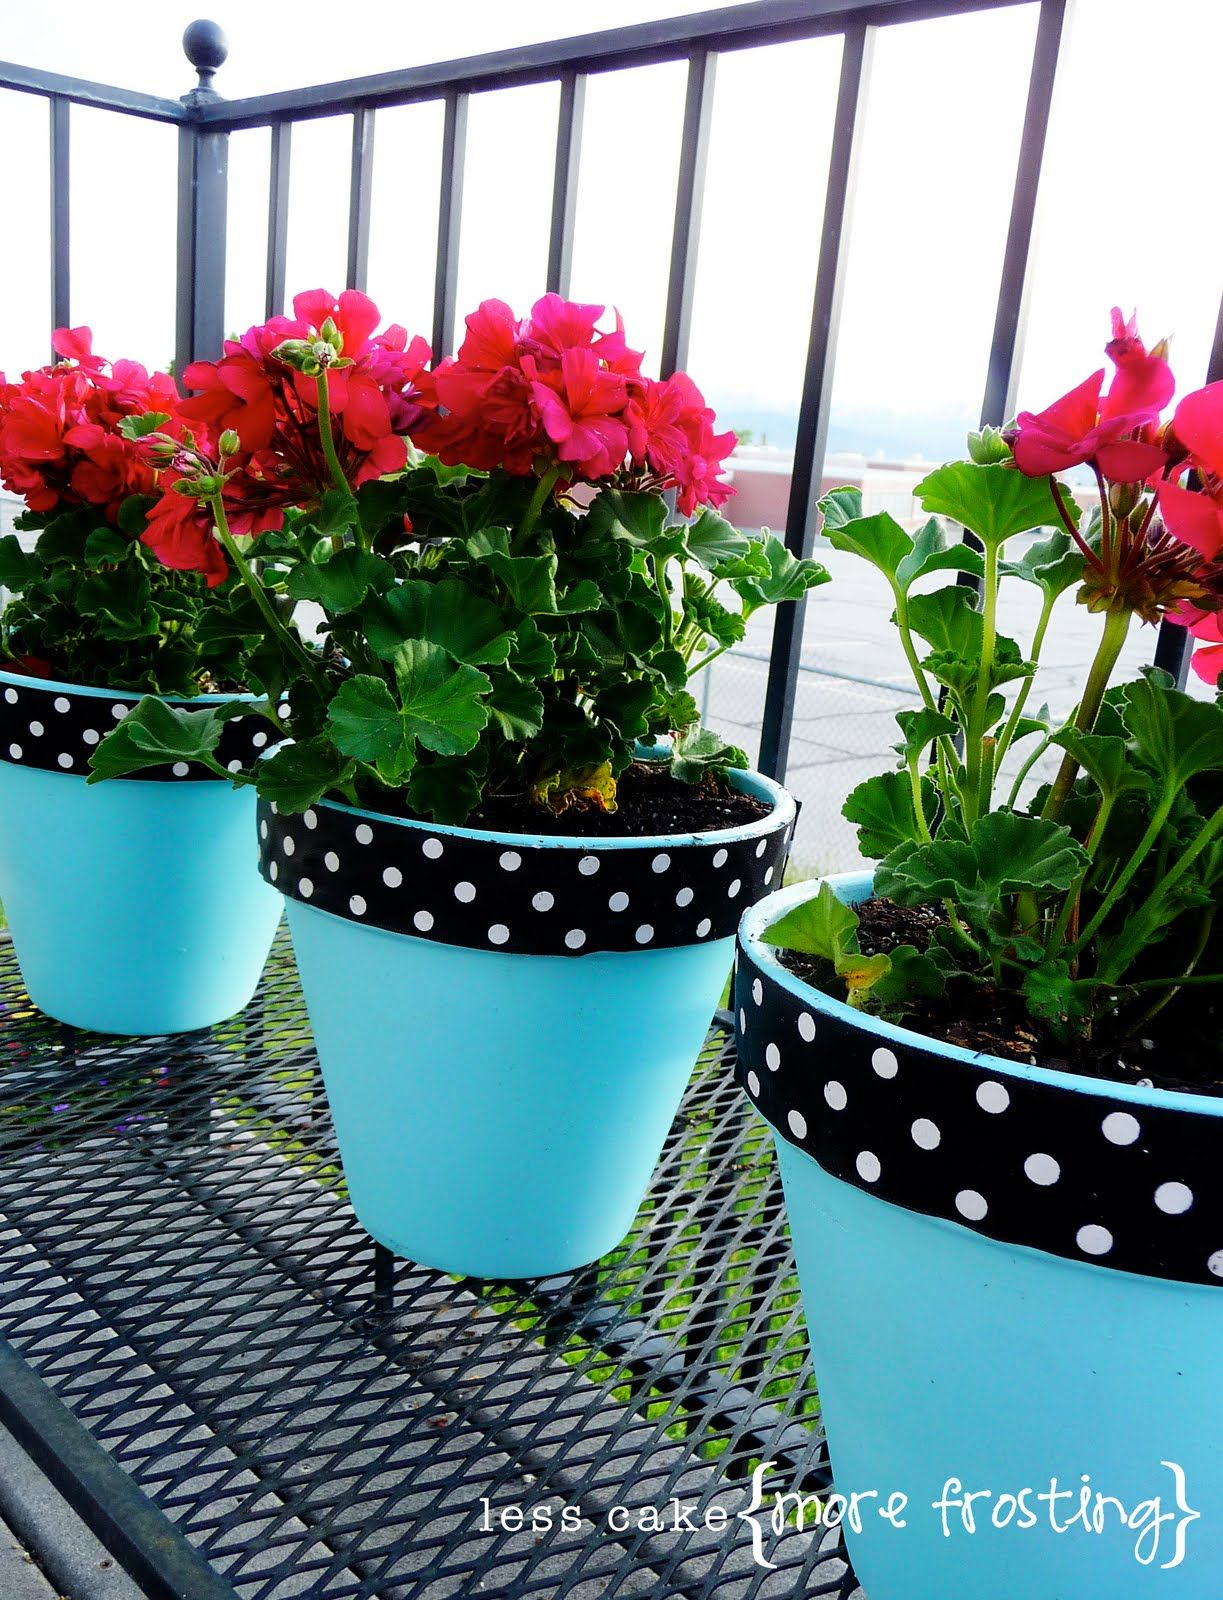 Blue Pots With Black Border And White Dots In 2020 Painted Flower Pots Painted Plant Pots Diy Flower Pots